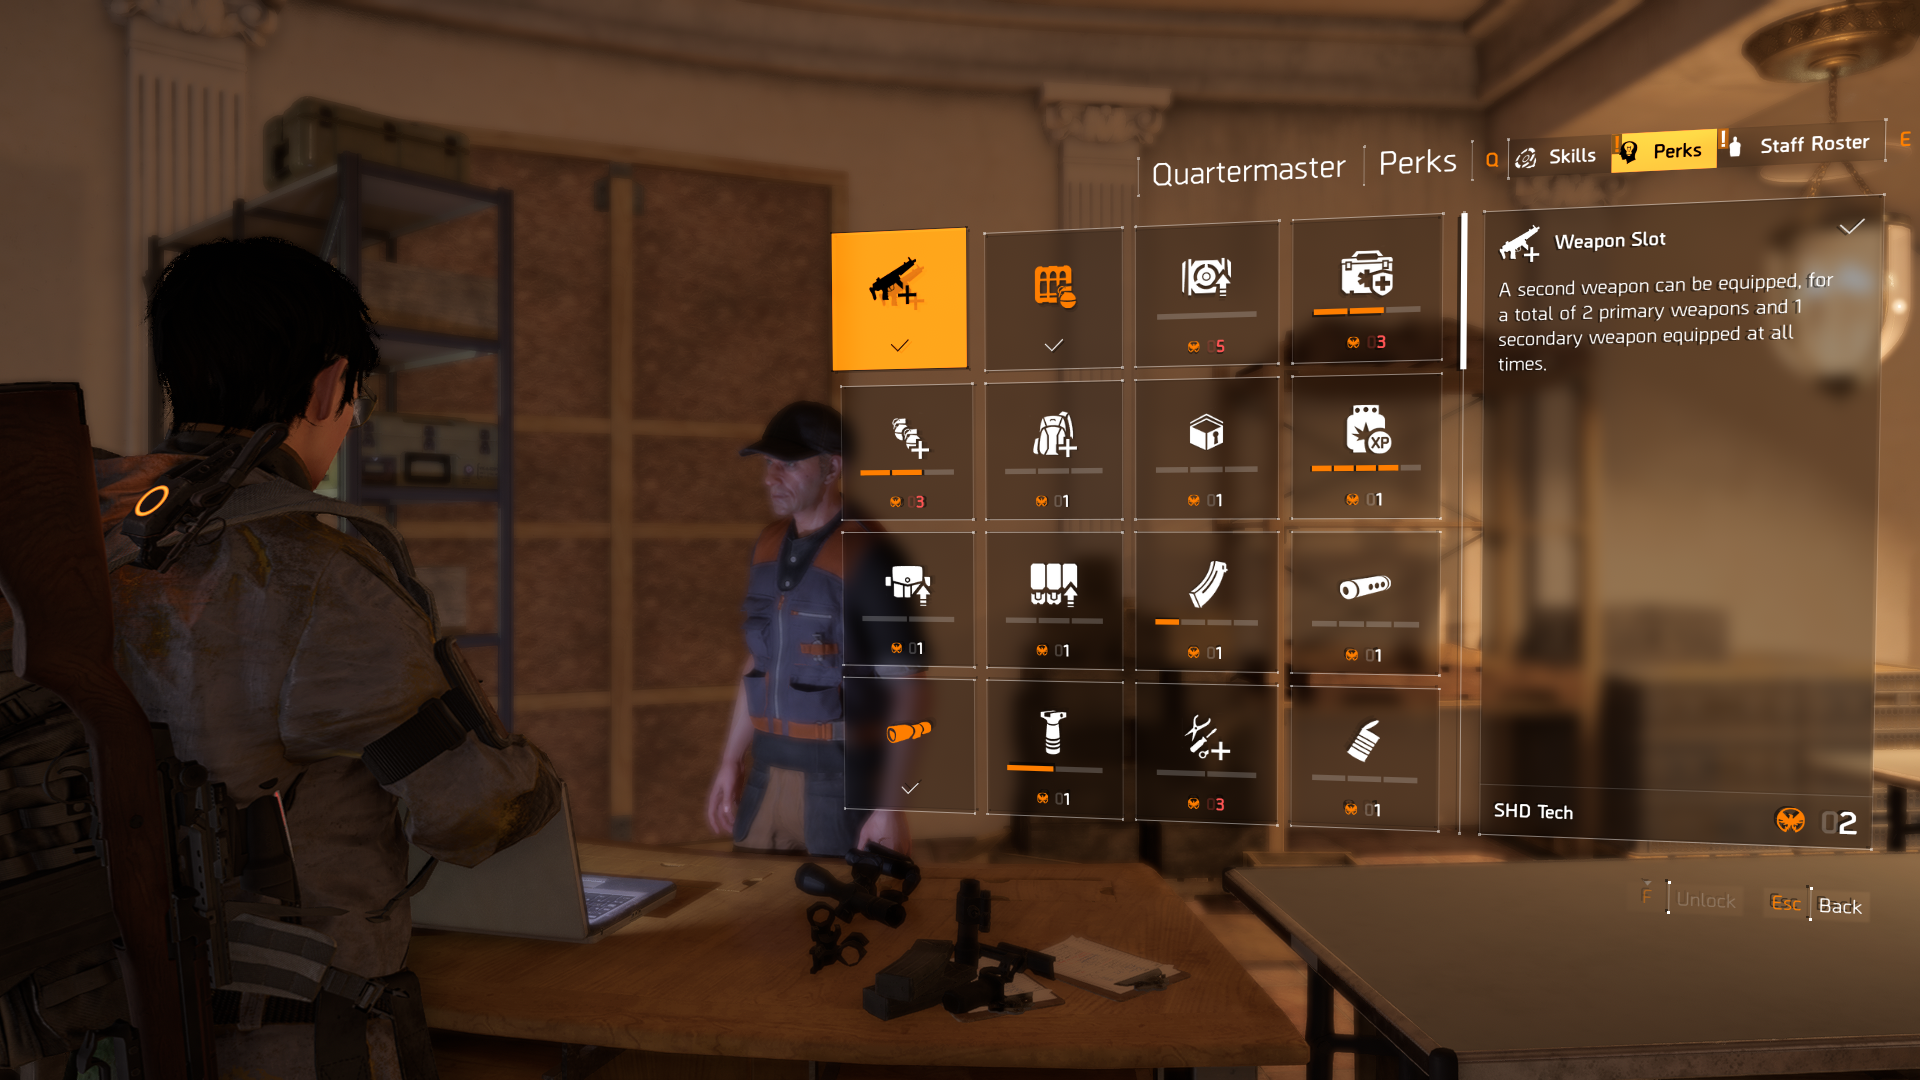 The perk tree in The Division 2